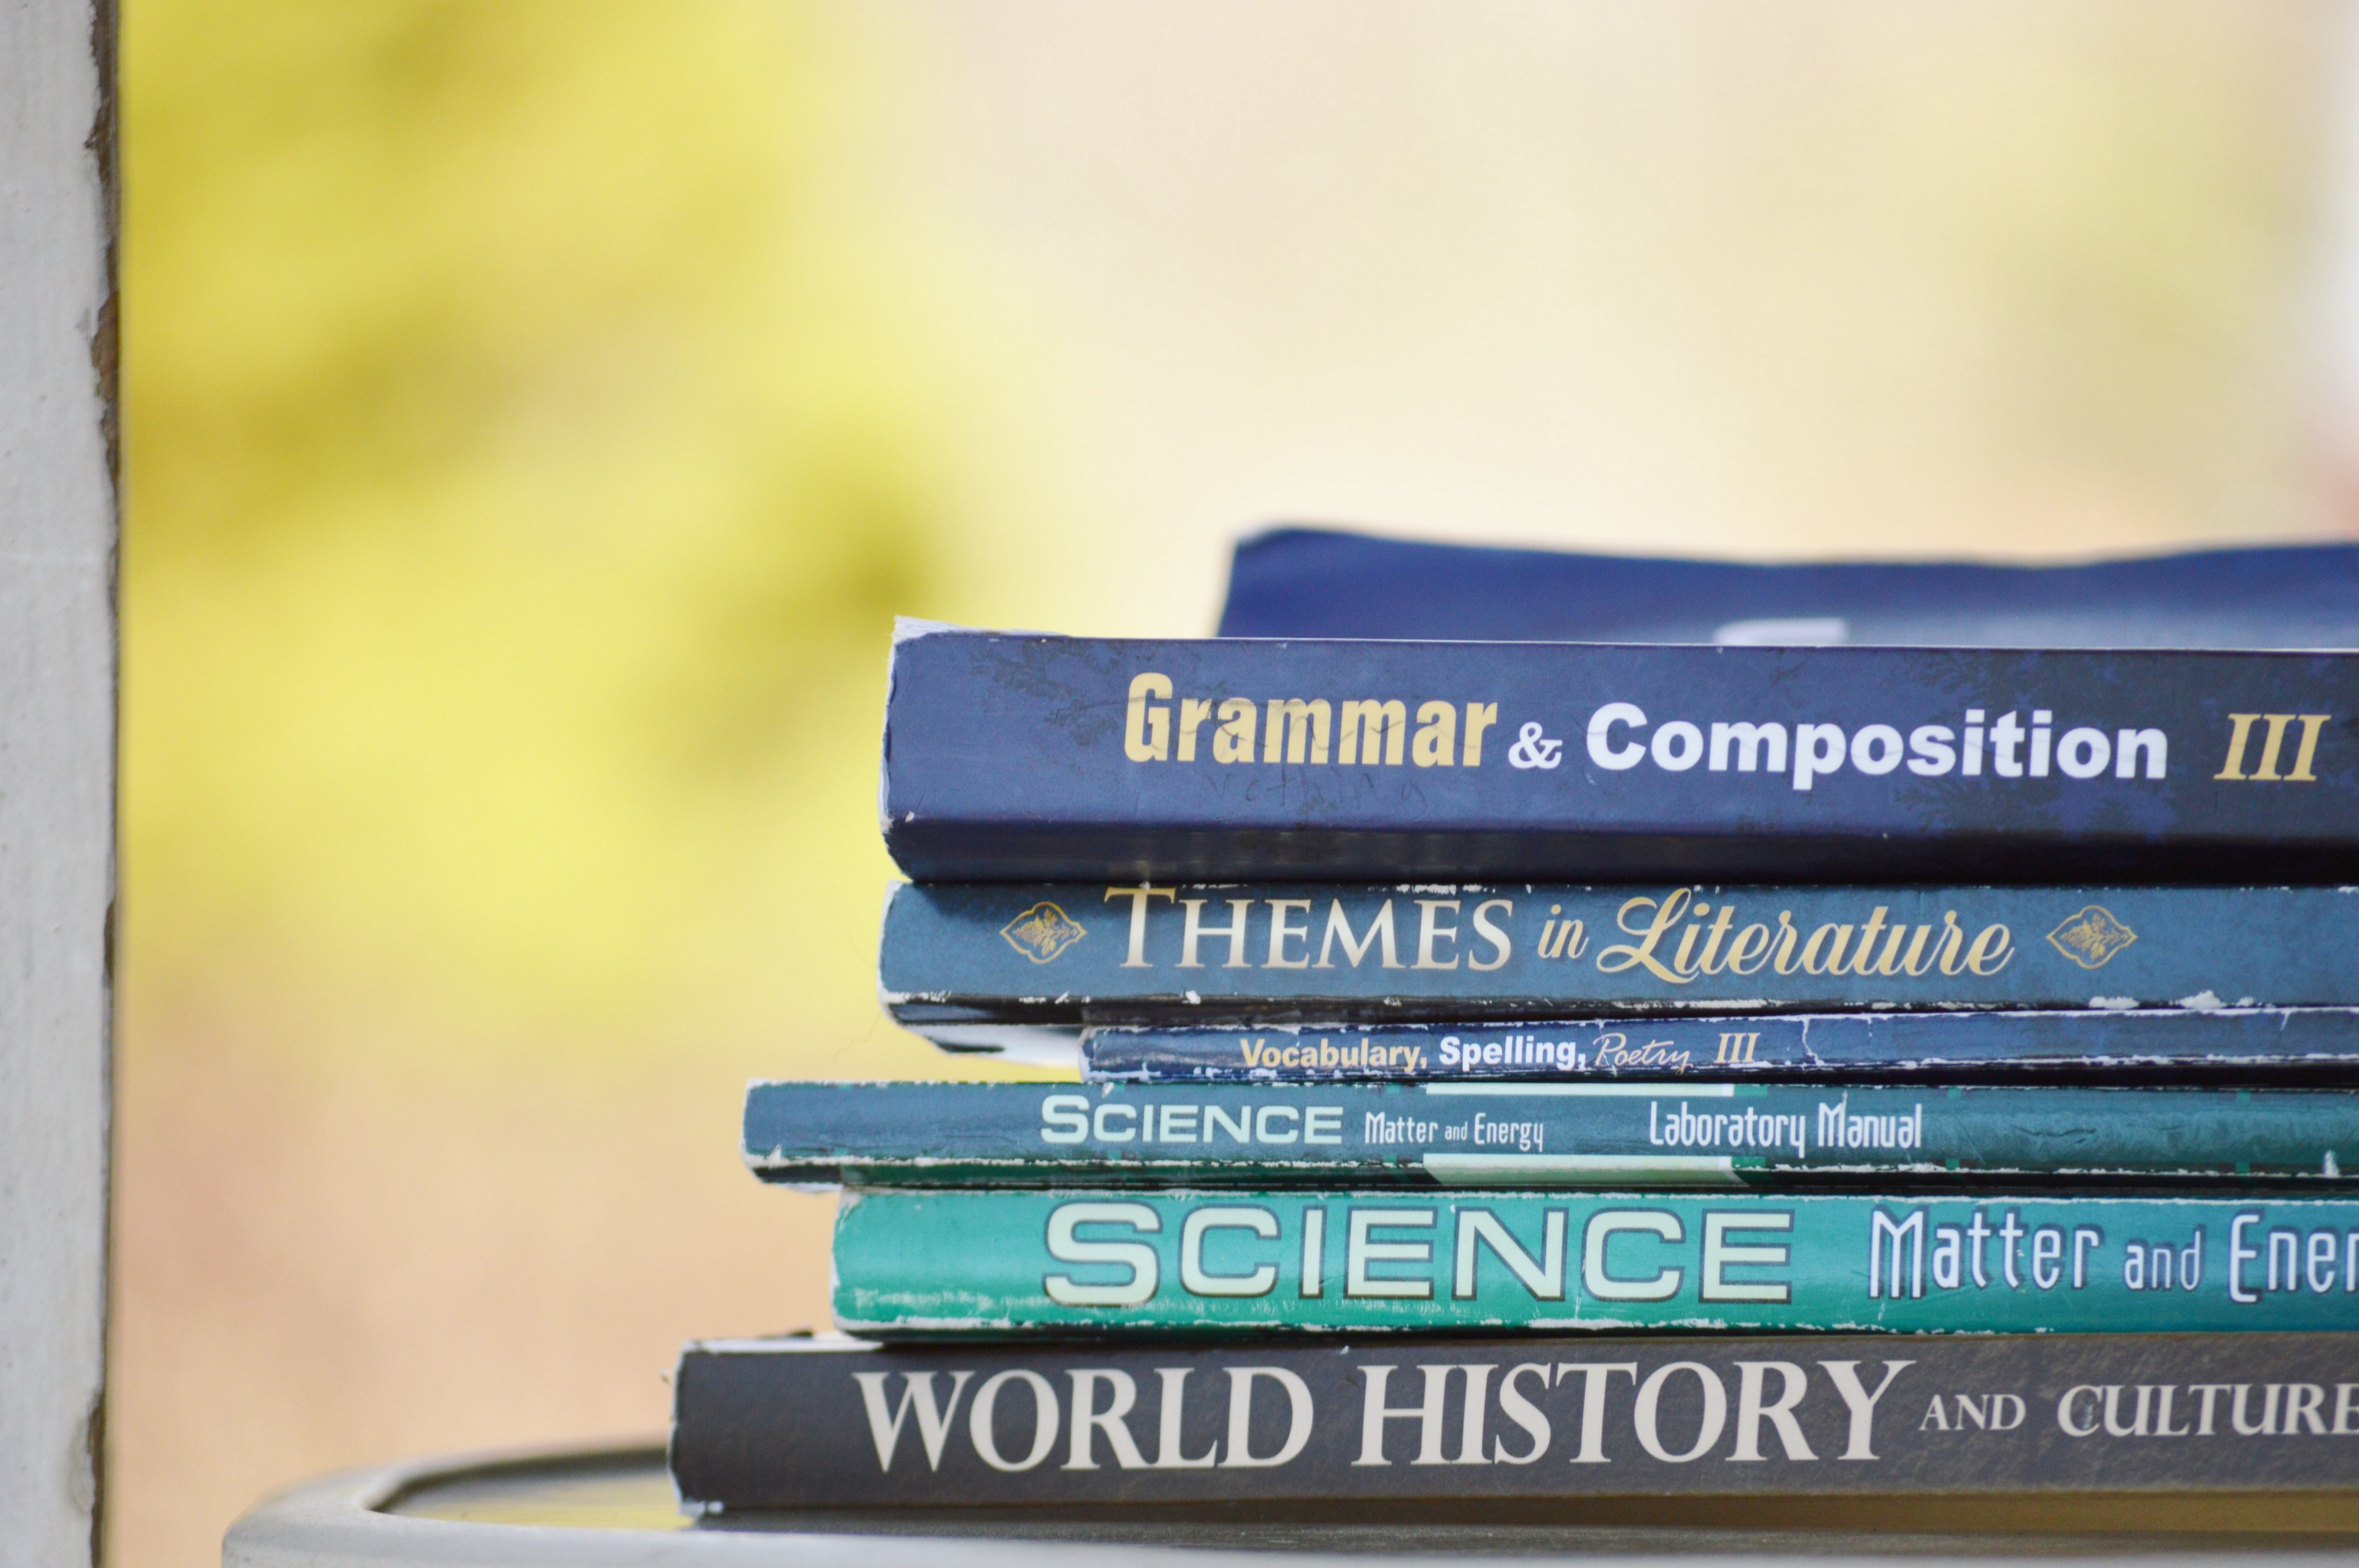 A set of old text books on a table, tattered and worn